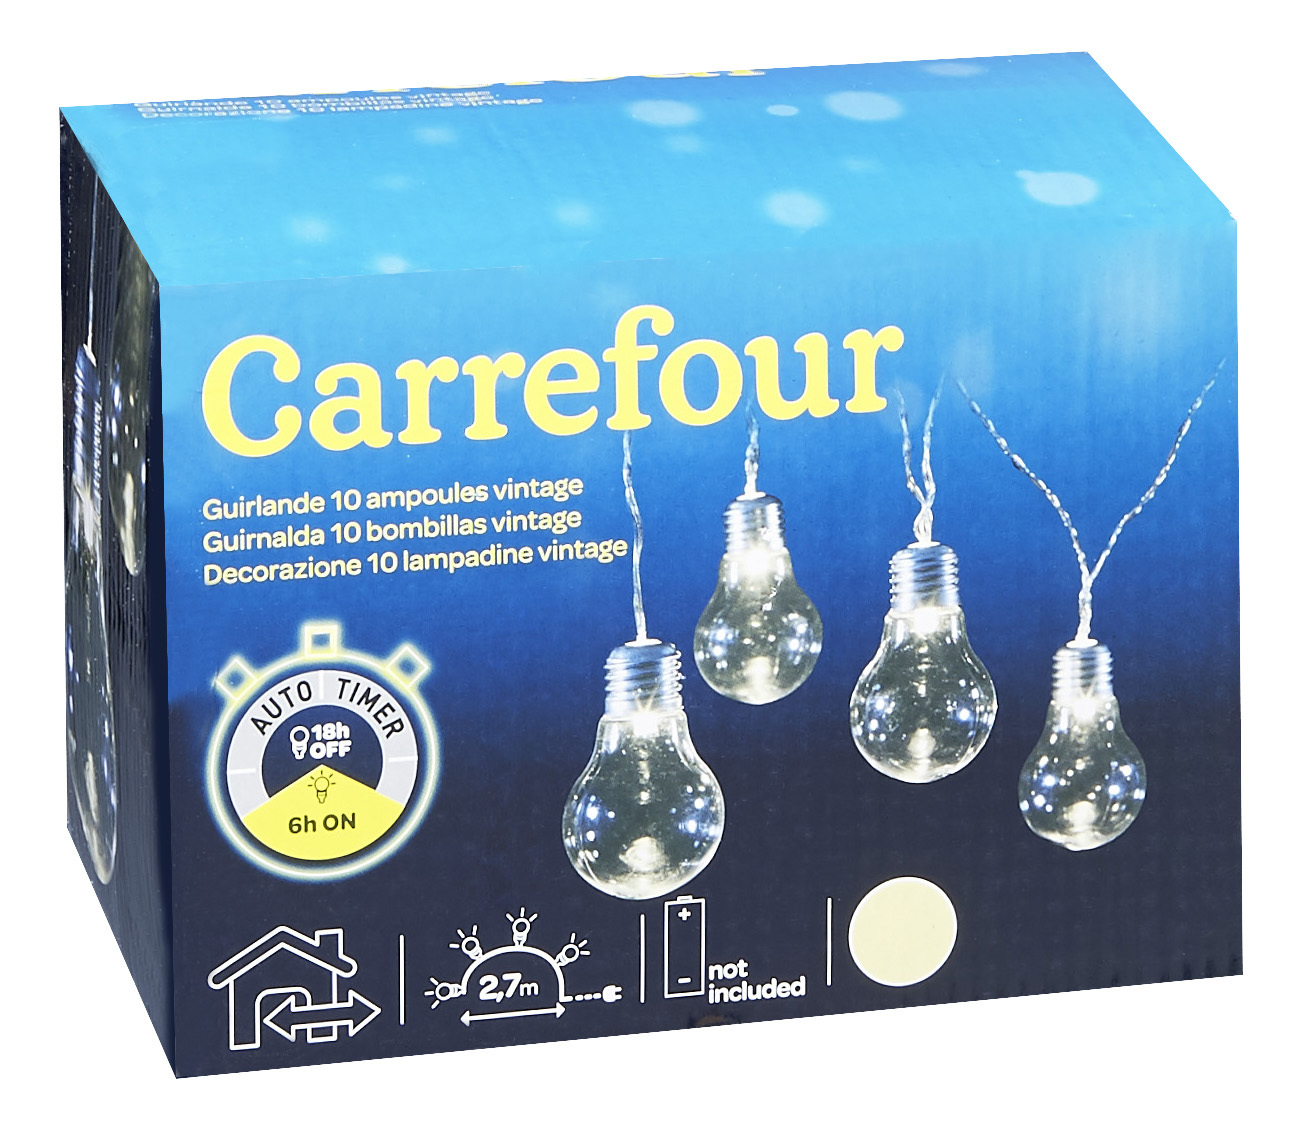 carrefour guirlande 10 ampoules vintage blanc chaud l 2 7 m de61680 pas cher achat. Black Bedroom Furniture Sets. Home Design Ideas